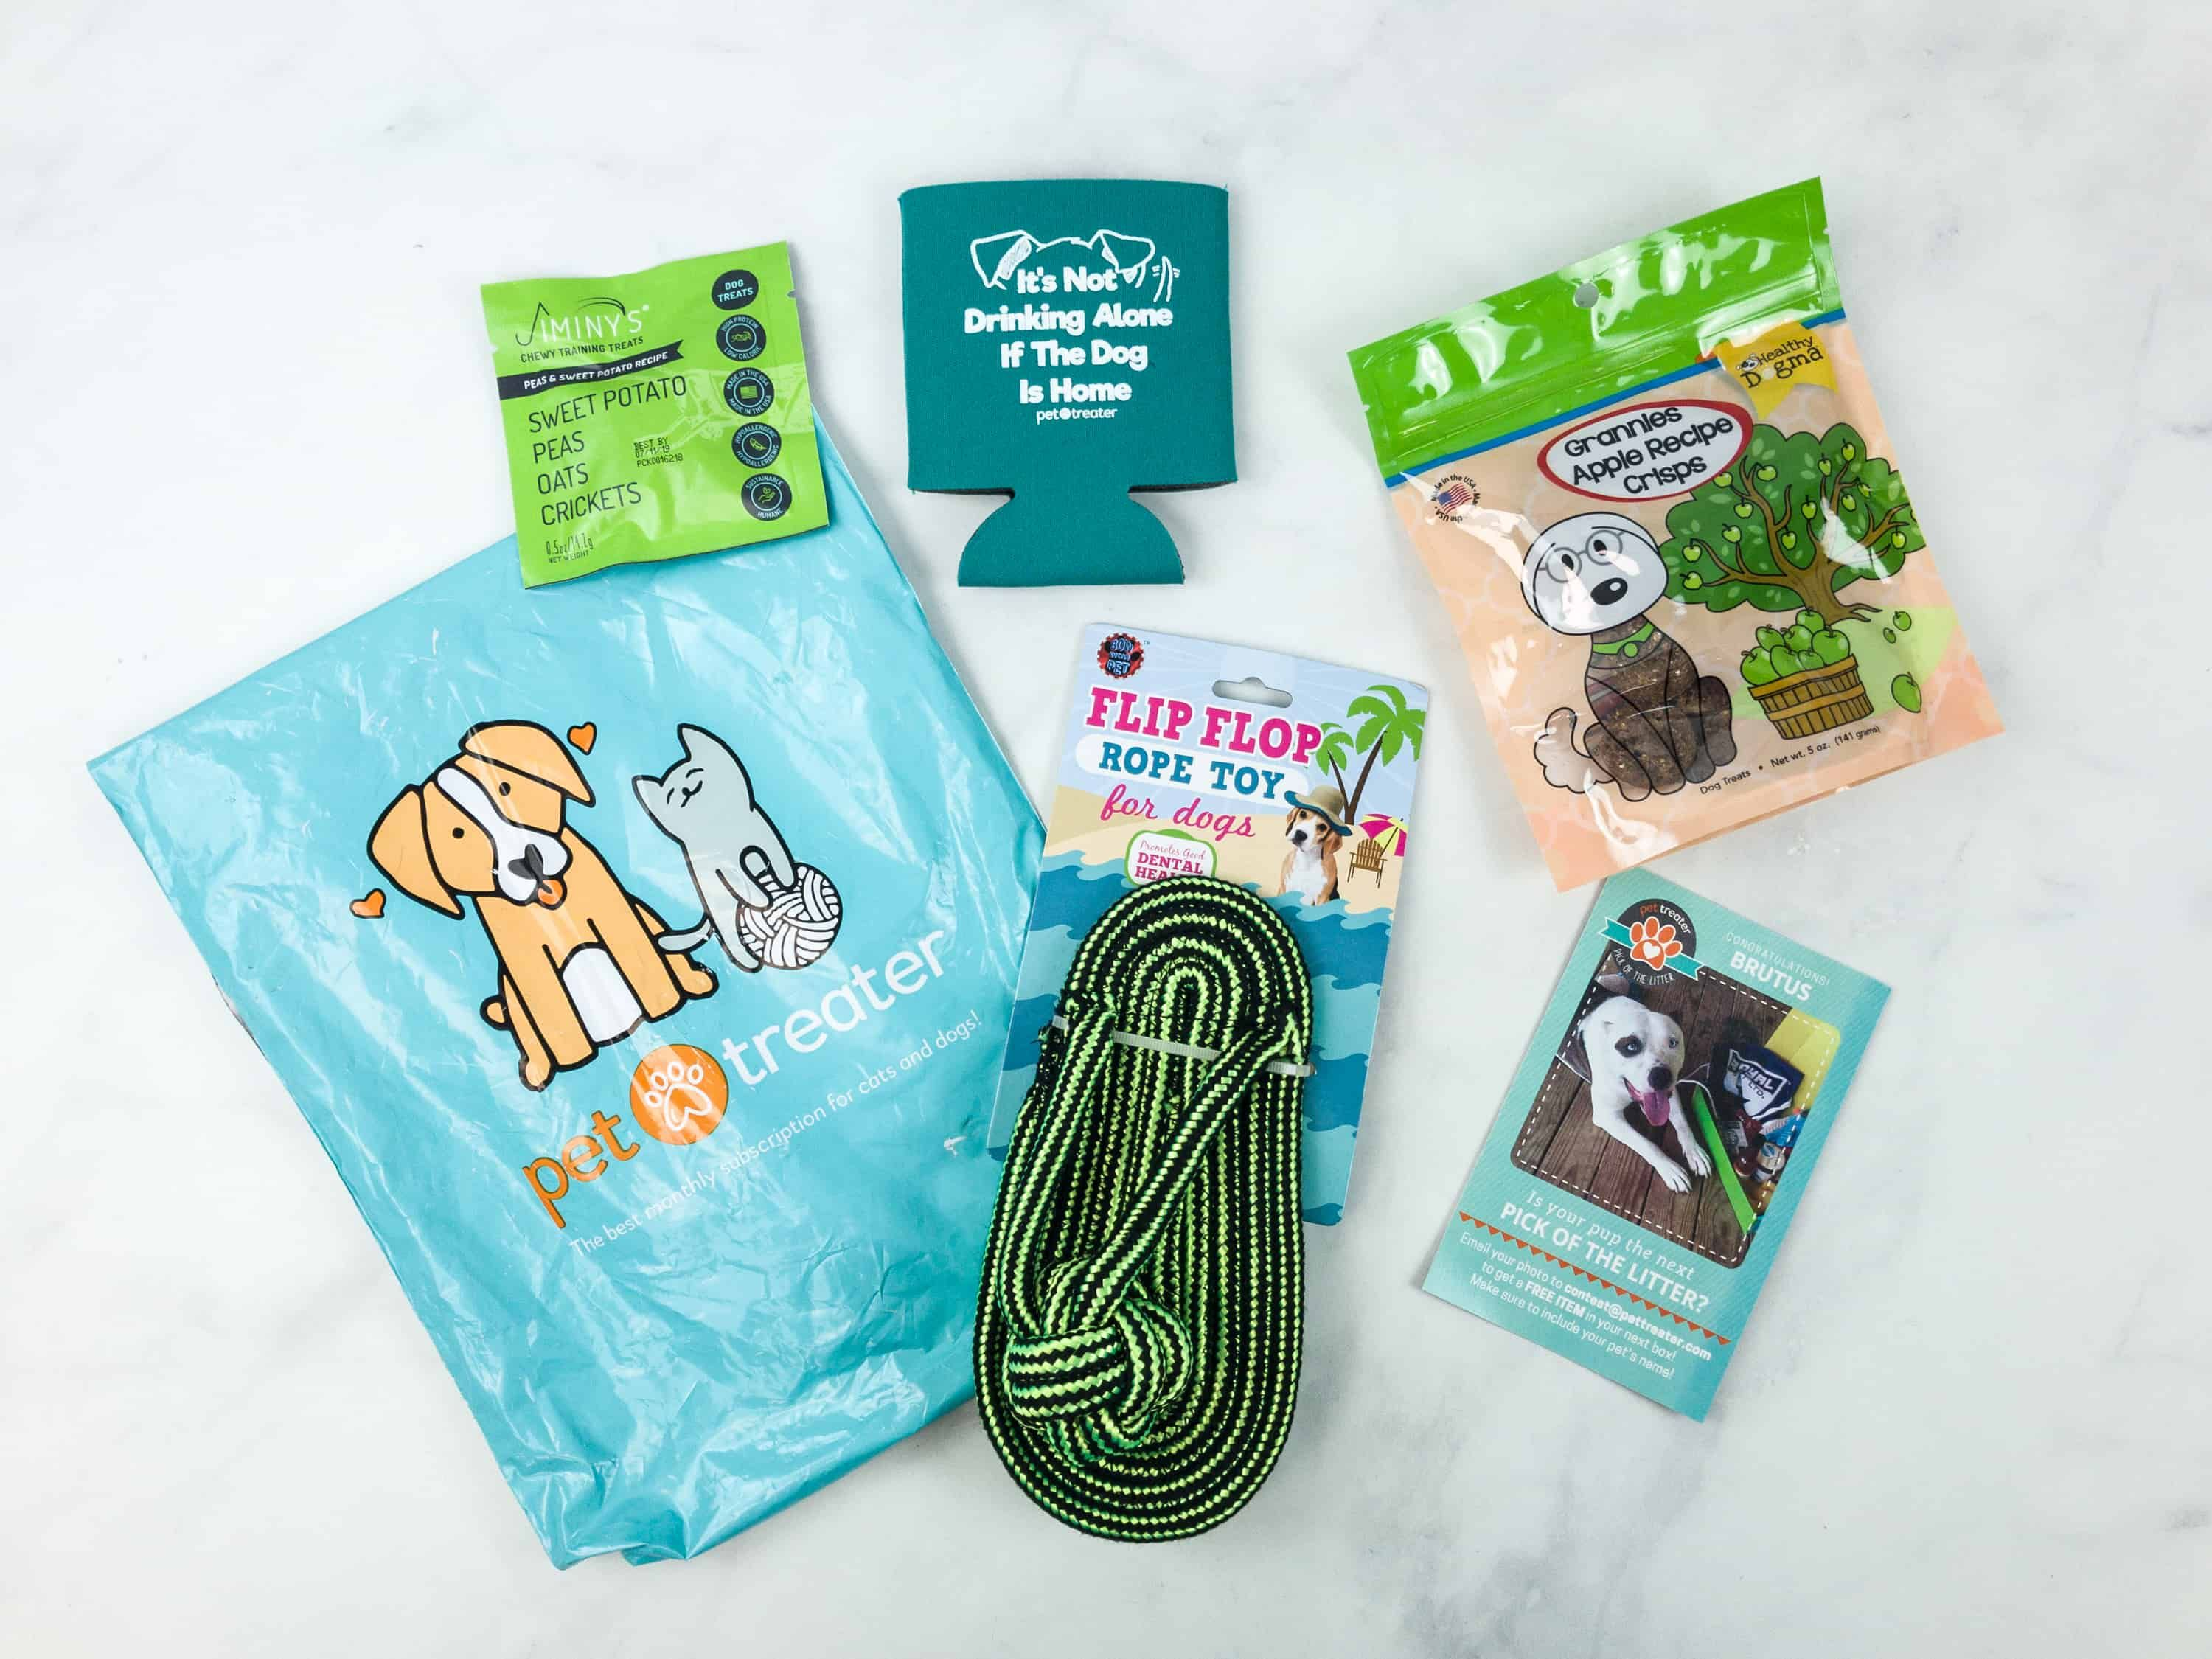 Pet Treater Dog Pack Dog box, Pets, Dogs